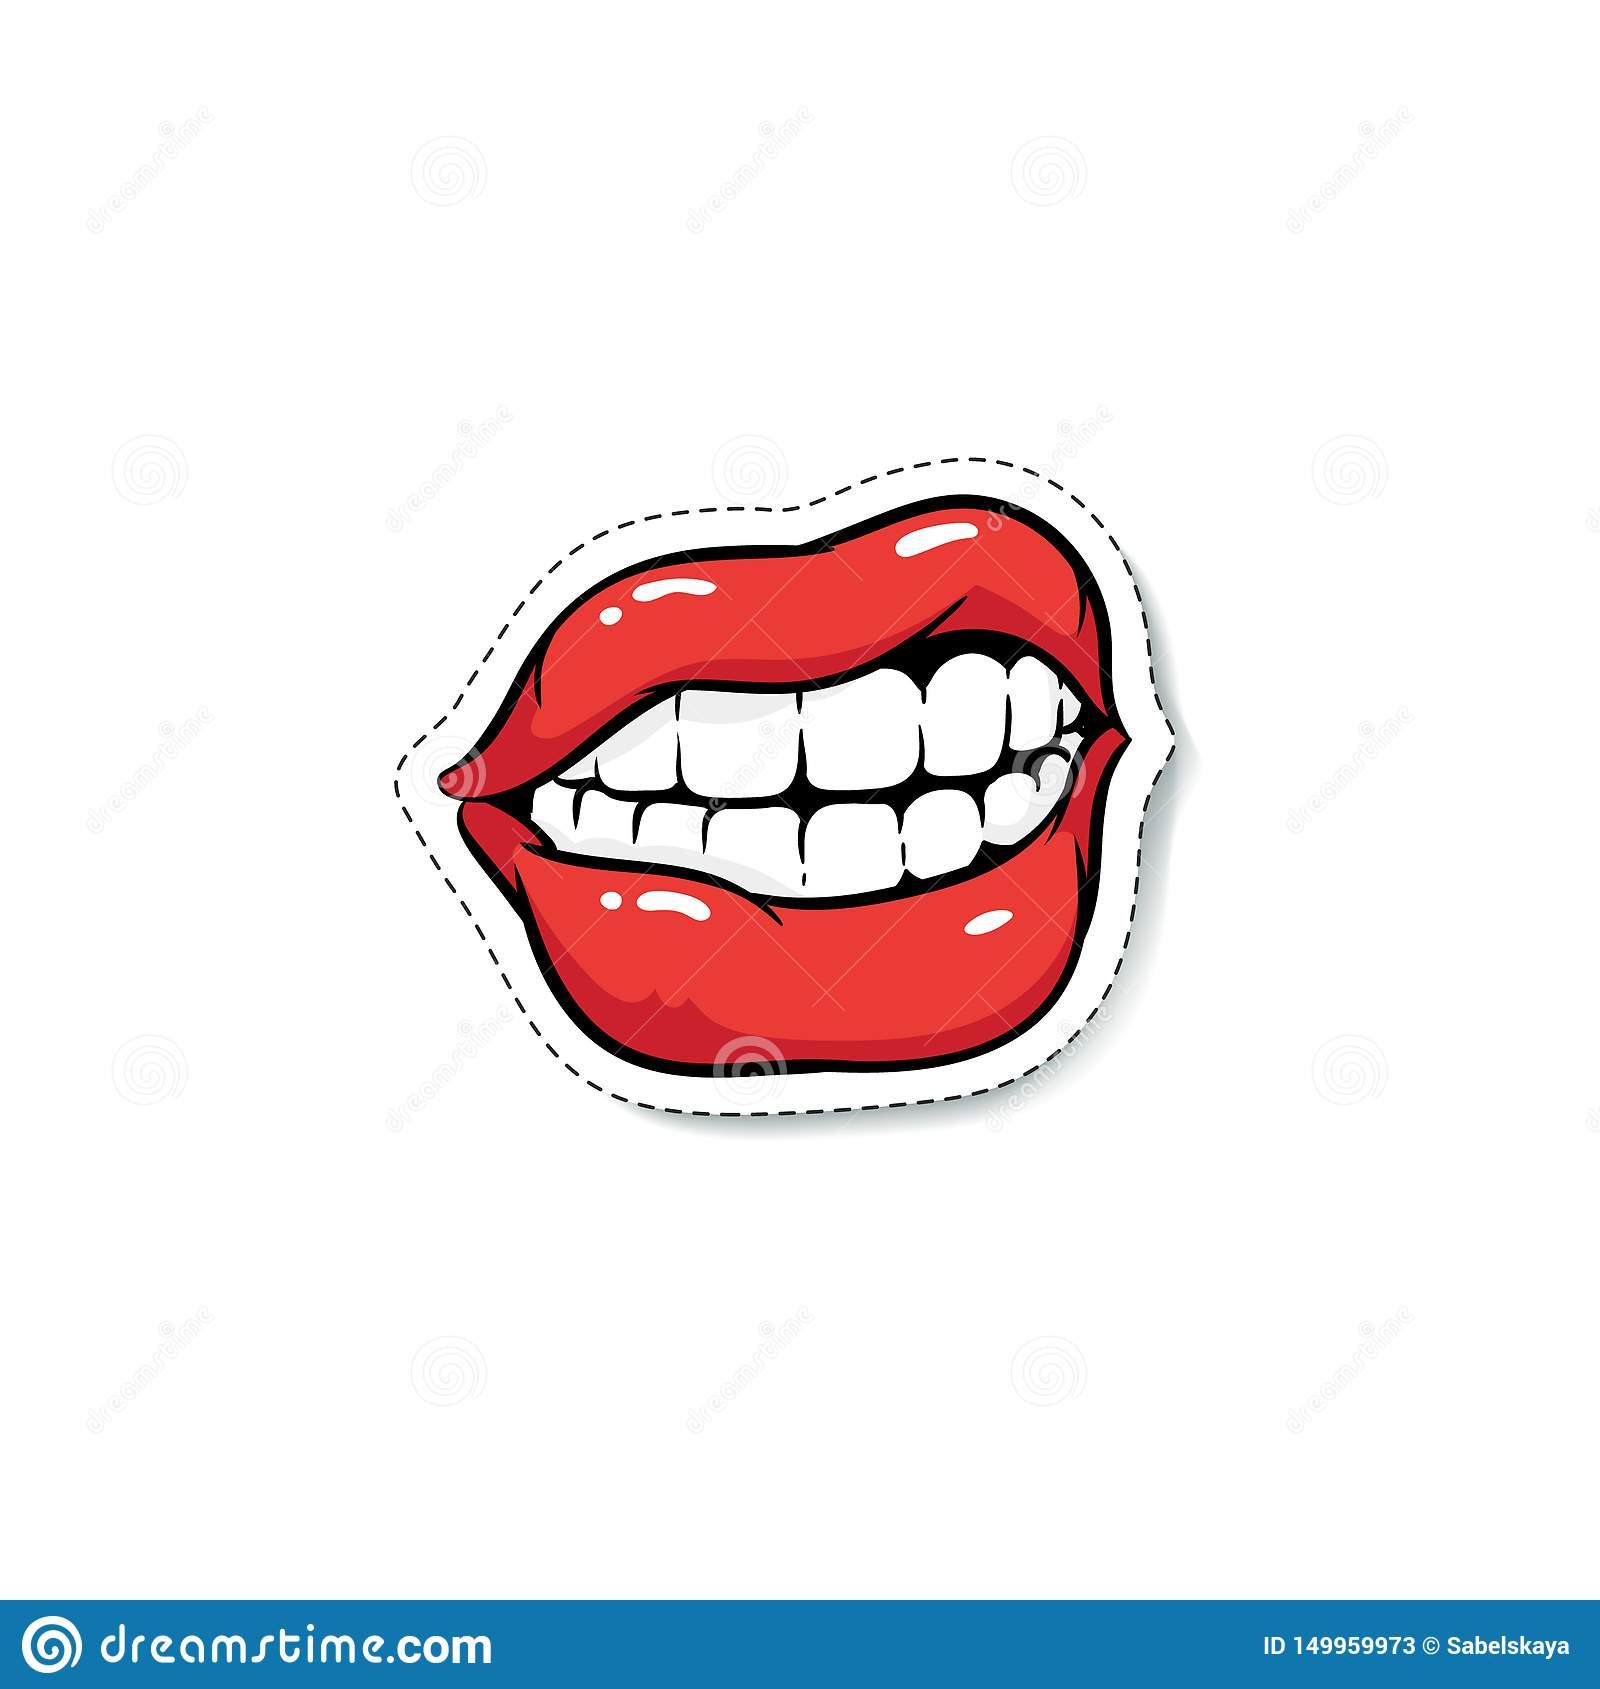 Ajar Grinning Female Mouth With Red Makeup Cartoon Pop Art Style Stock Vector Illustration Of Isolated Drawing 149959973